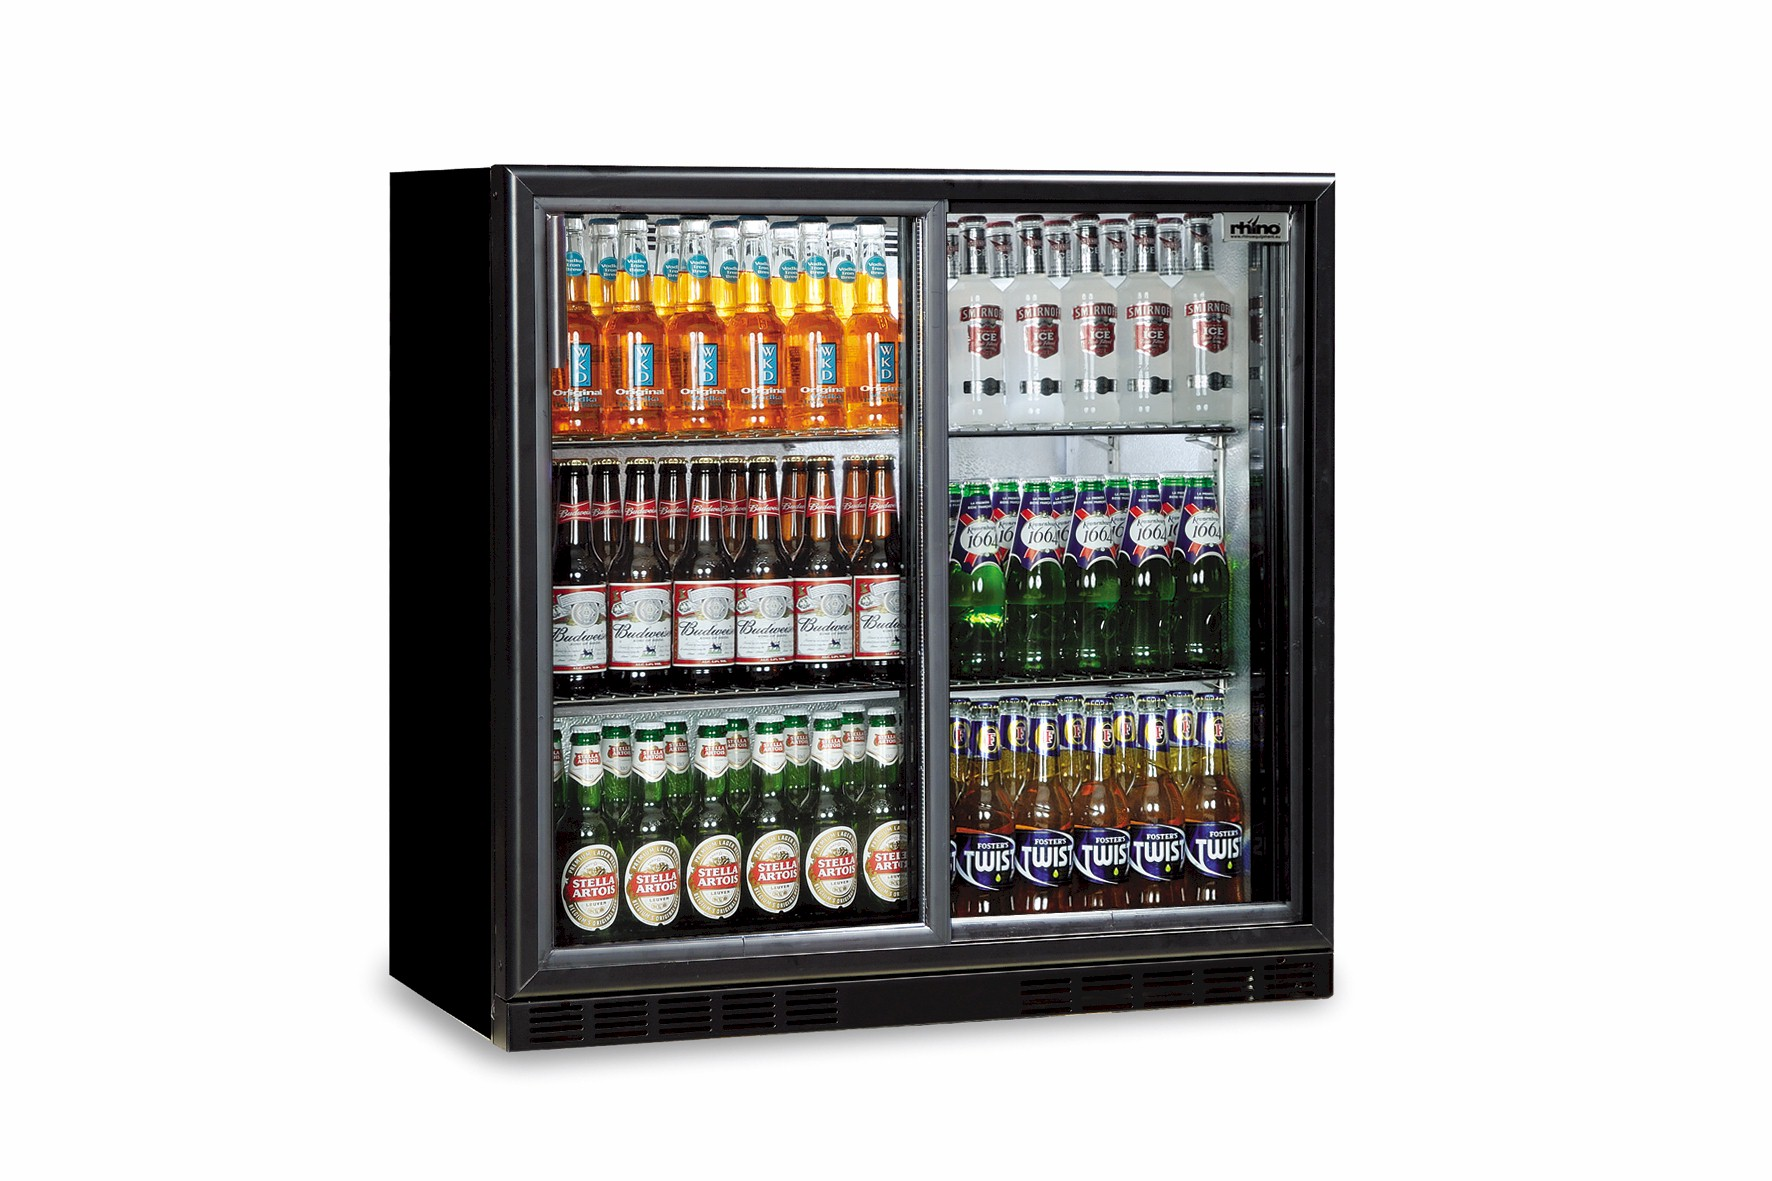 Image Result For Clean Stainless Steel Refrigerator